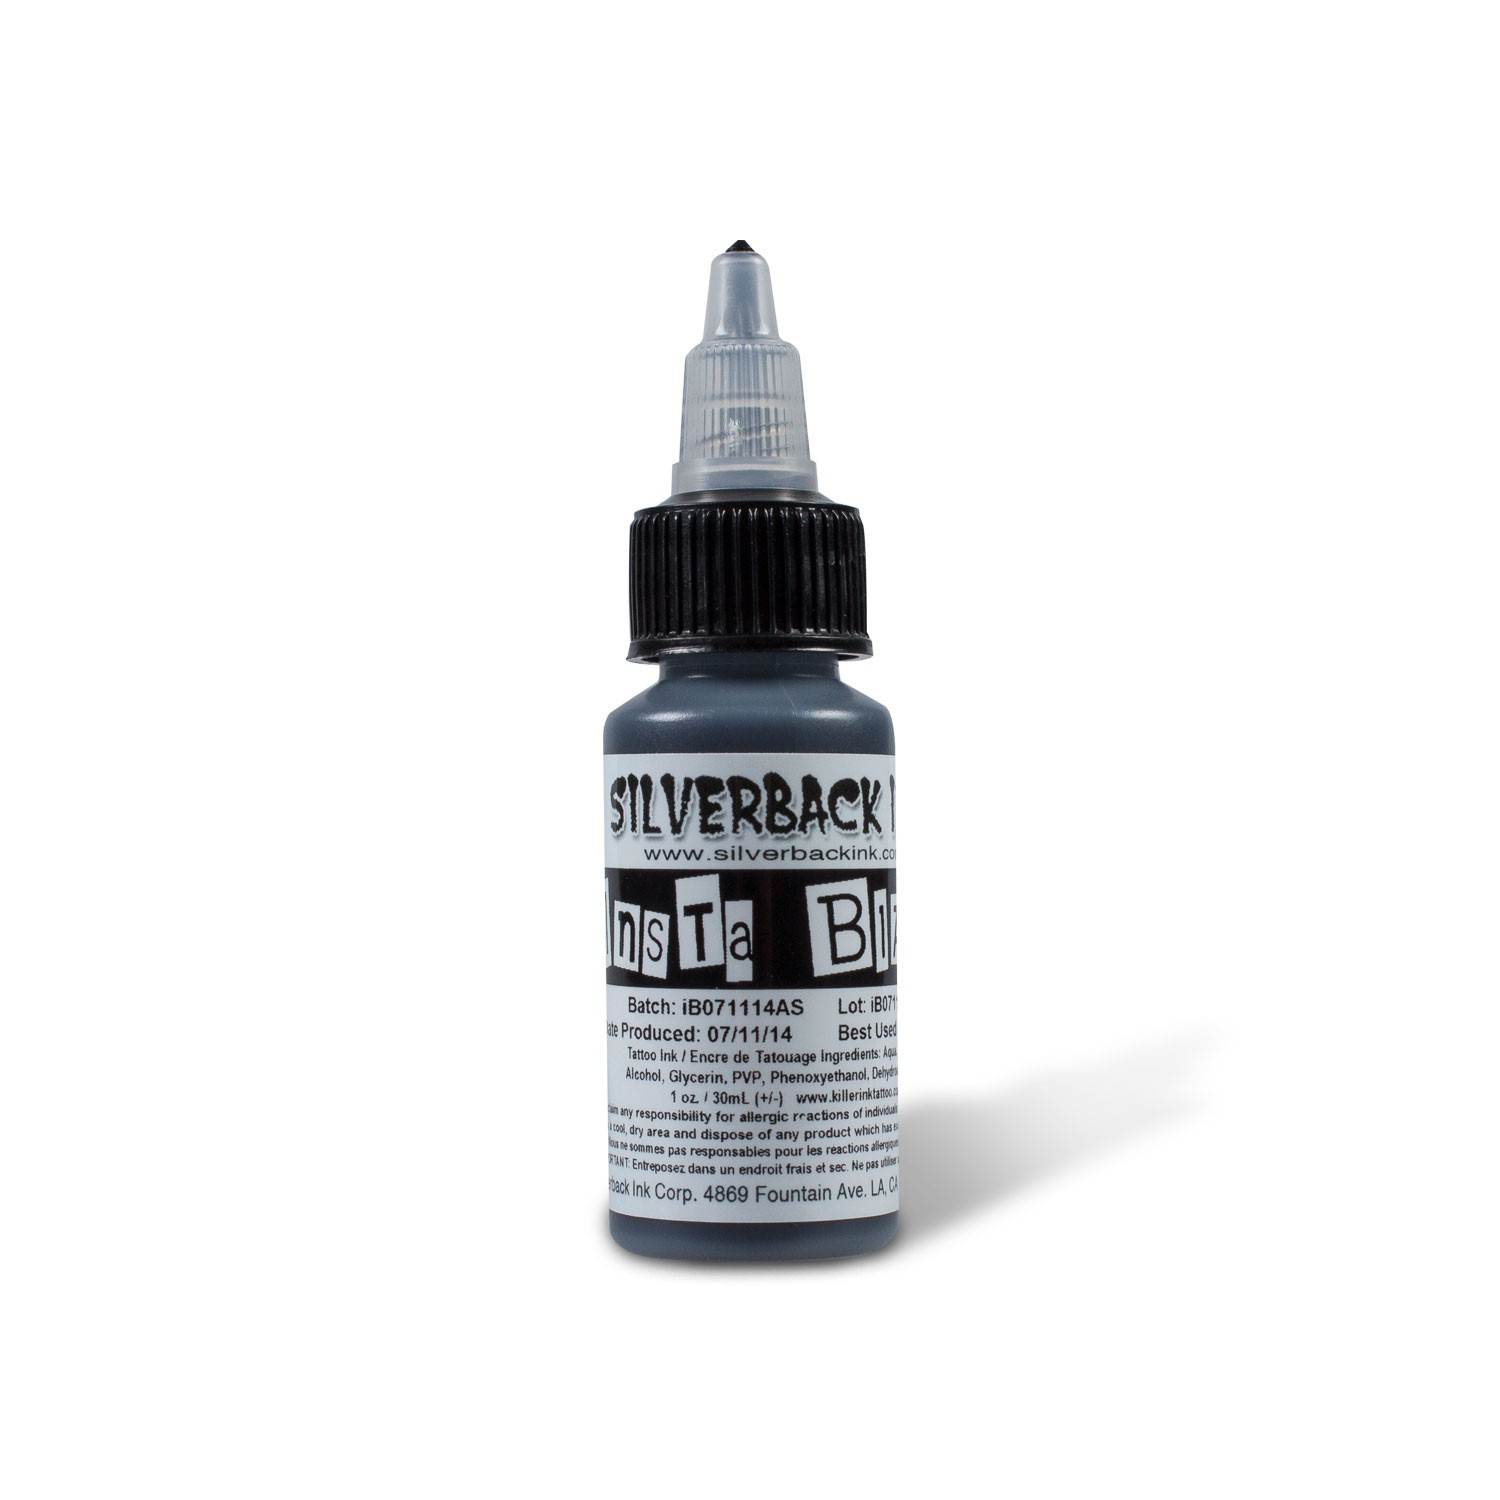 InstaBlack - 1oz Bottle